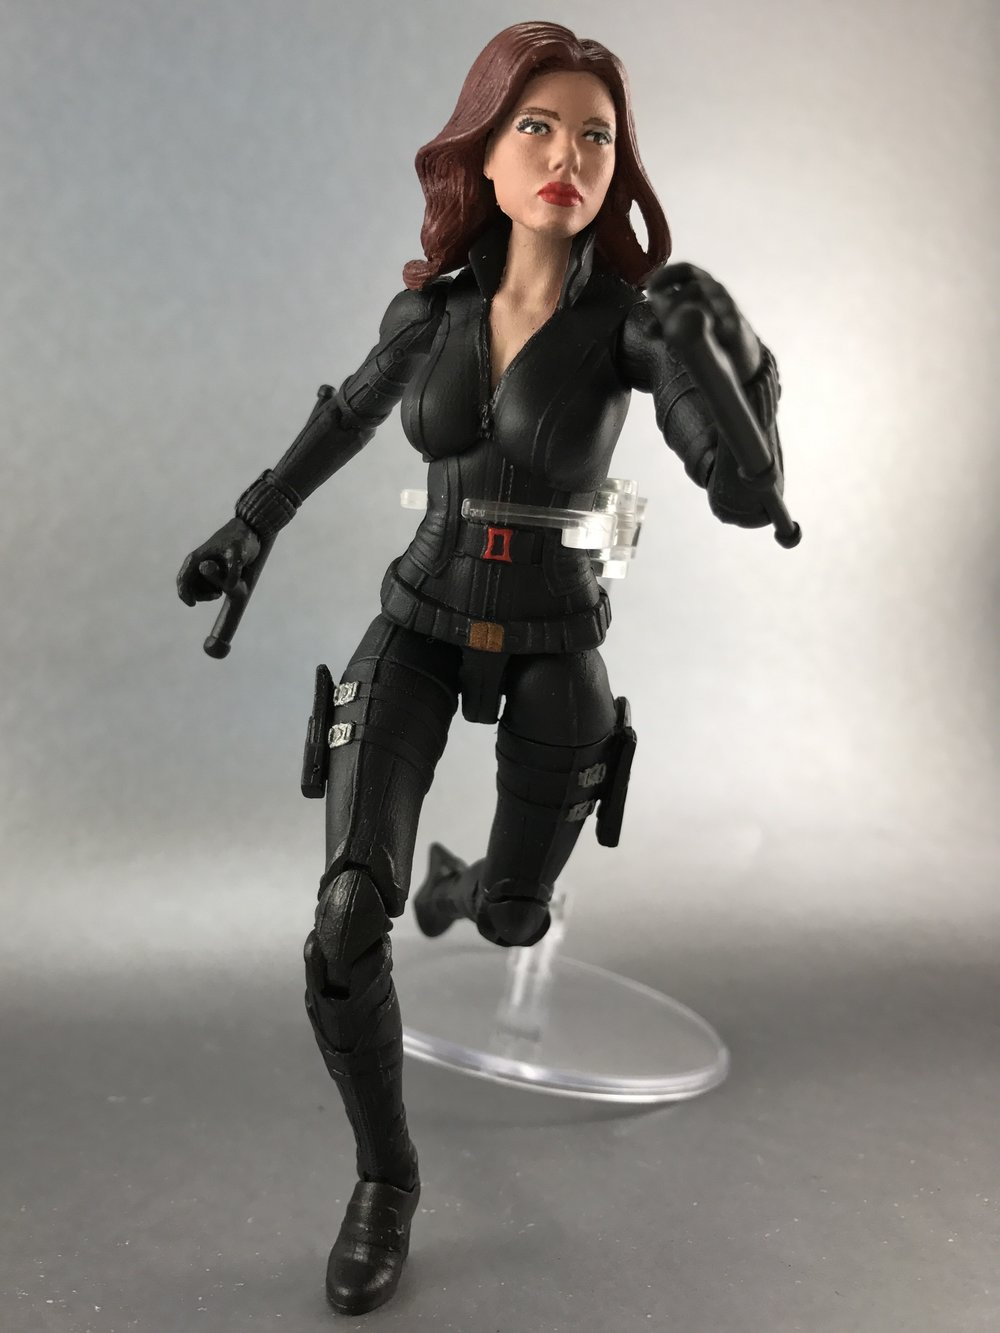 black widow cw 02.jpg